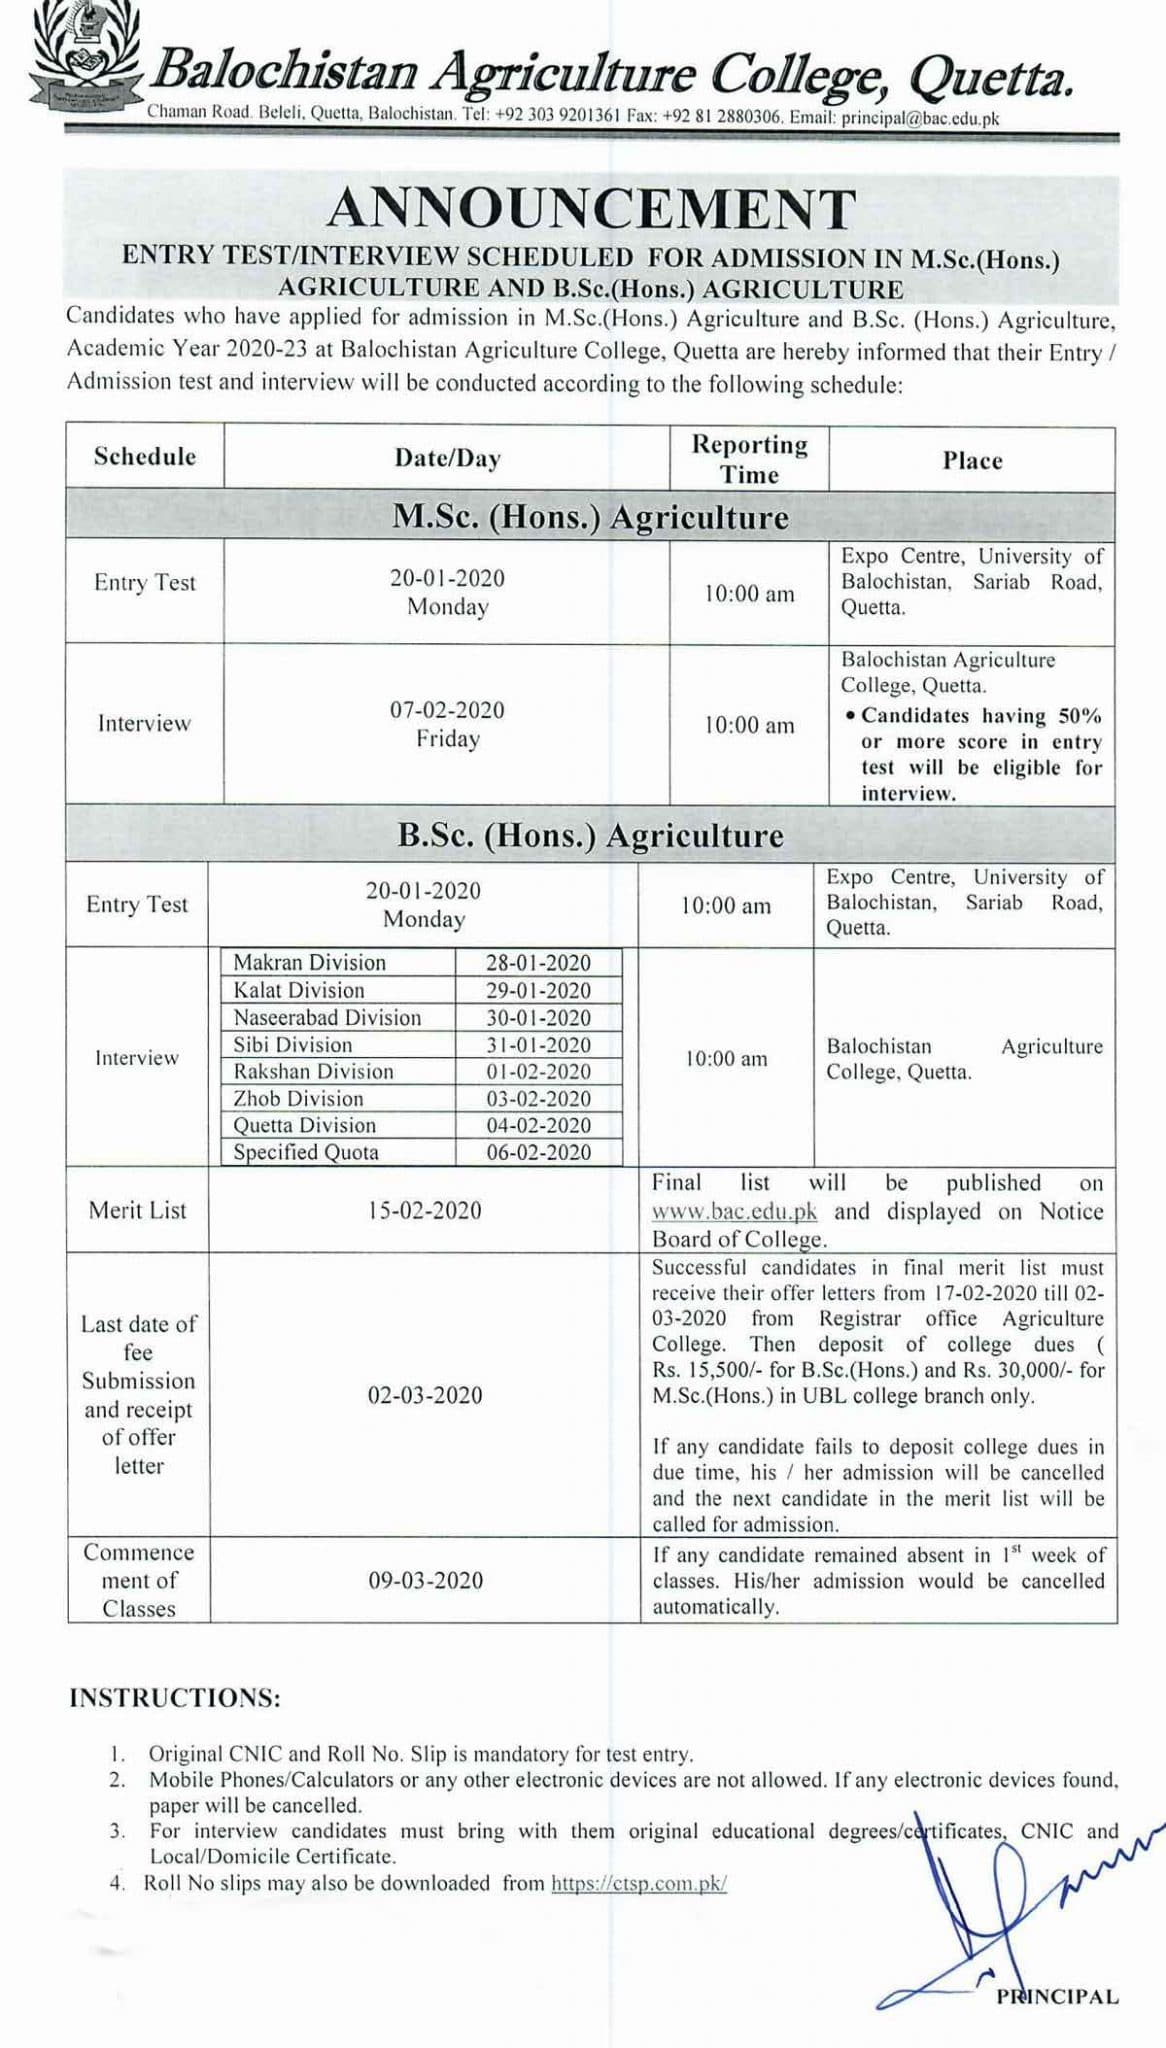 Balochistan-Agriculture-College-Quetta-Admission-2020